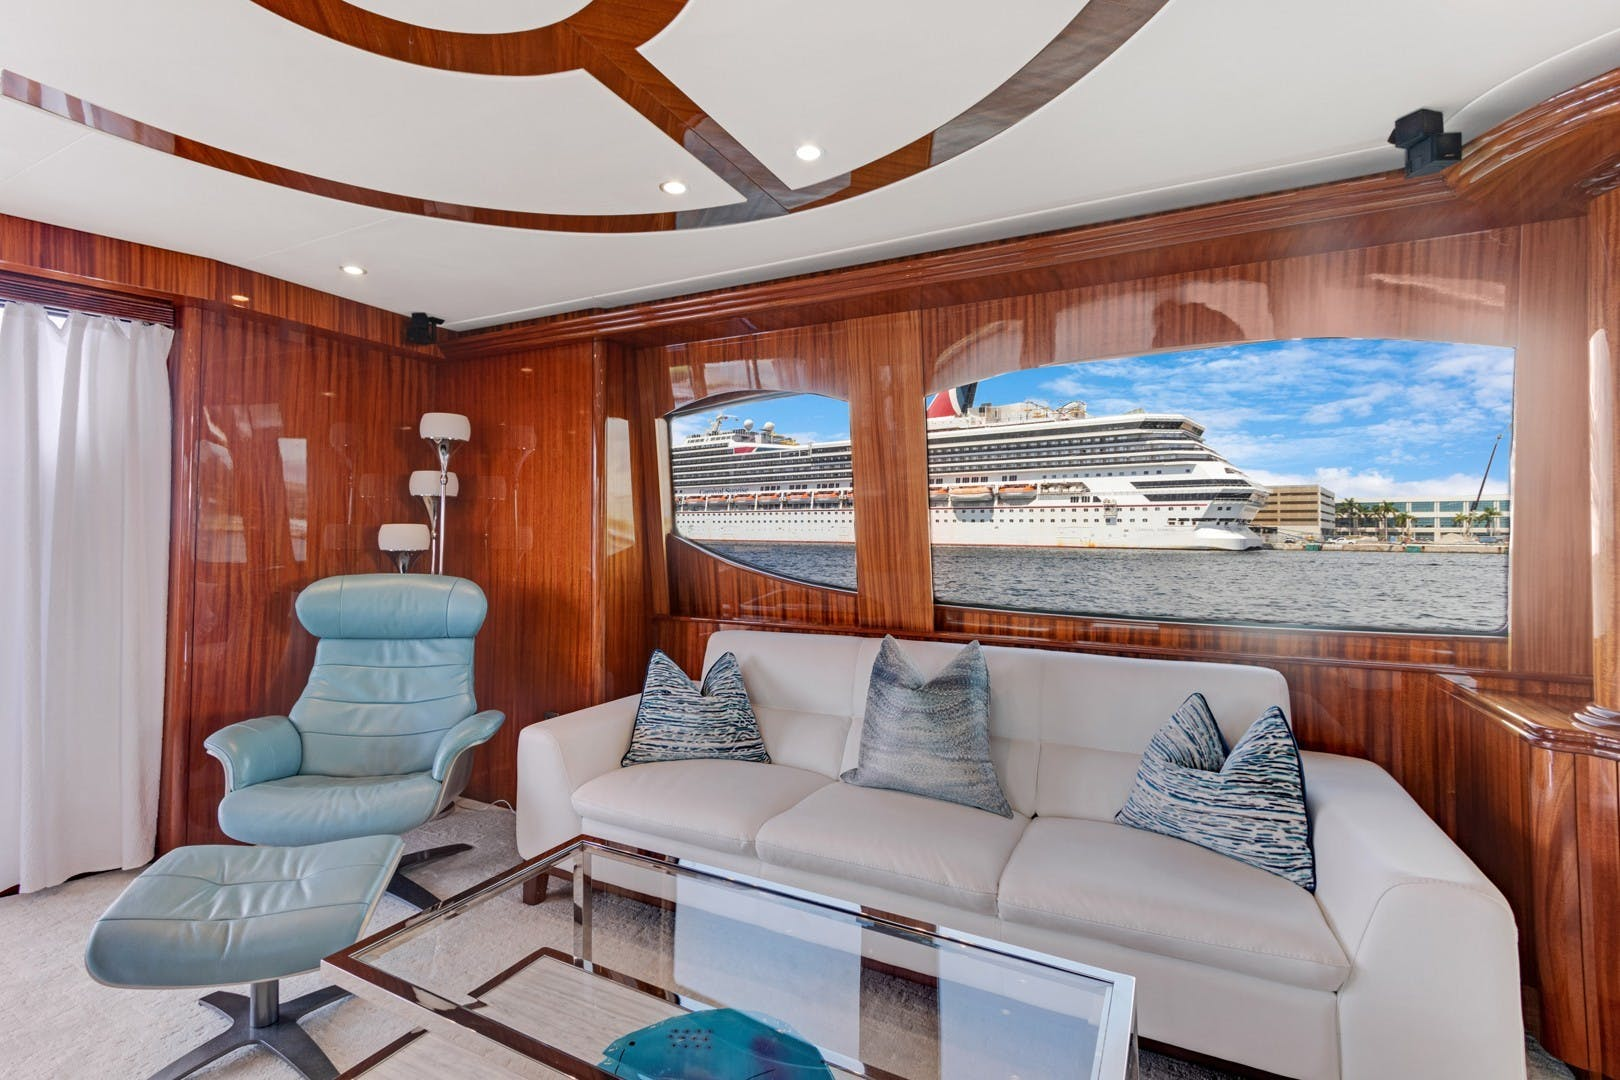 2012 Hatteras 80' Enclosed Bridge Motor Yacht OBSESSION   Picture 4 of 76